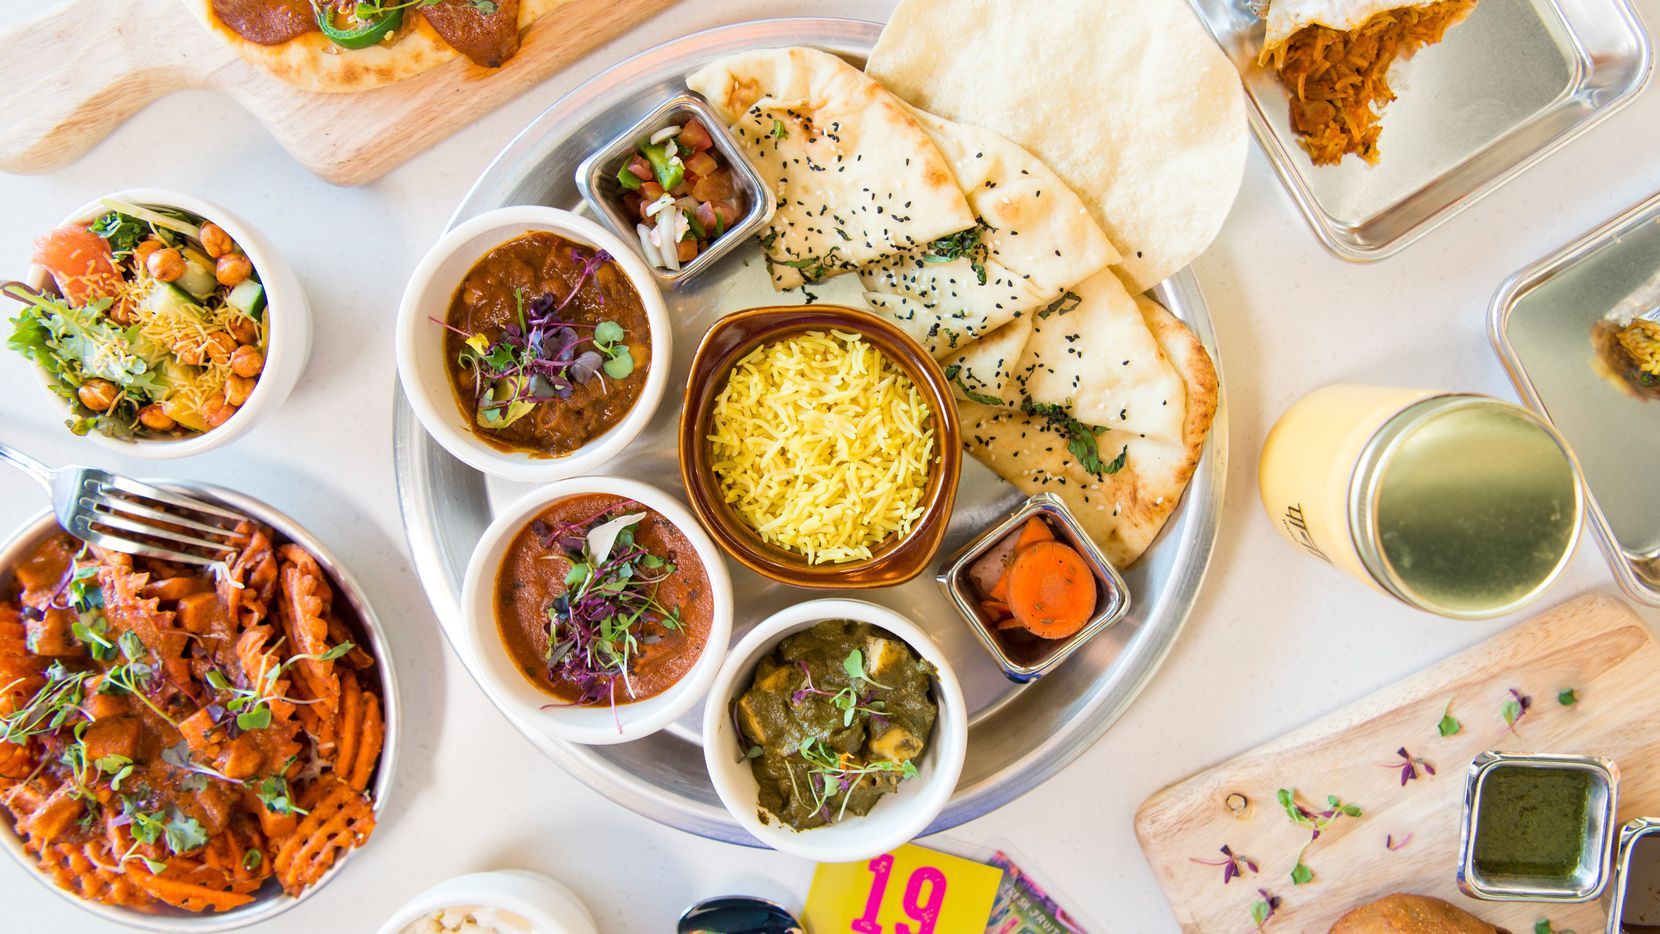 Curry Up Now is a fast-casual Indian restaurant that is expected to expand to Dallas, Fort Worth and Austin in 2021.